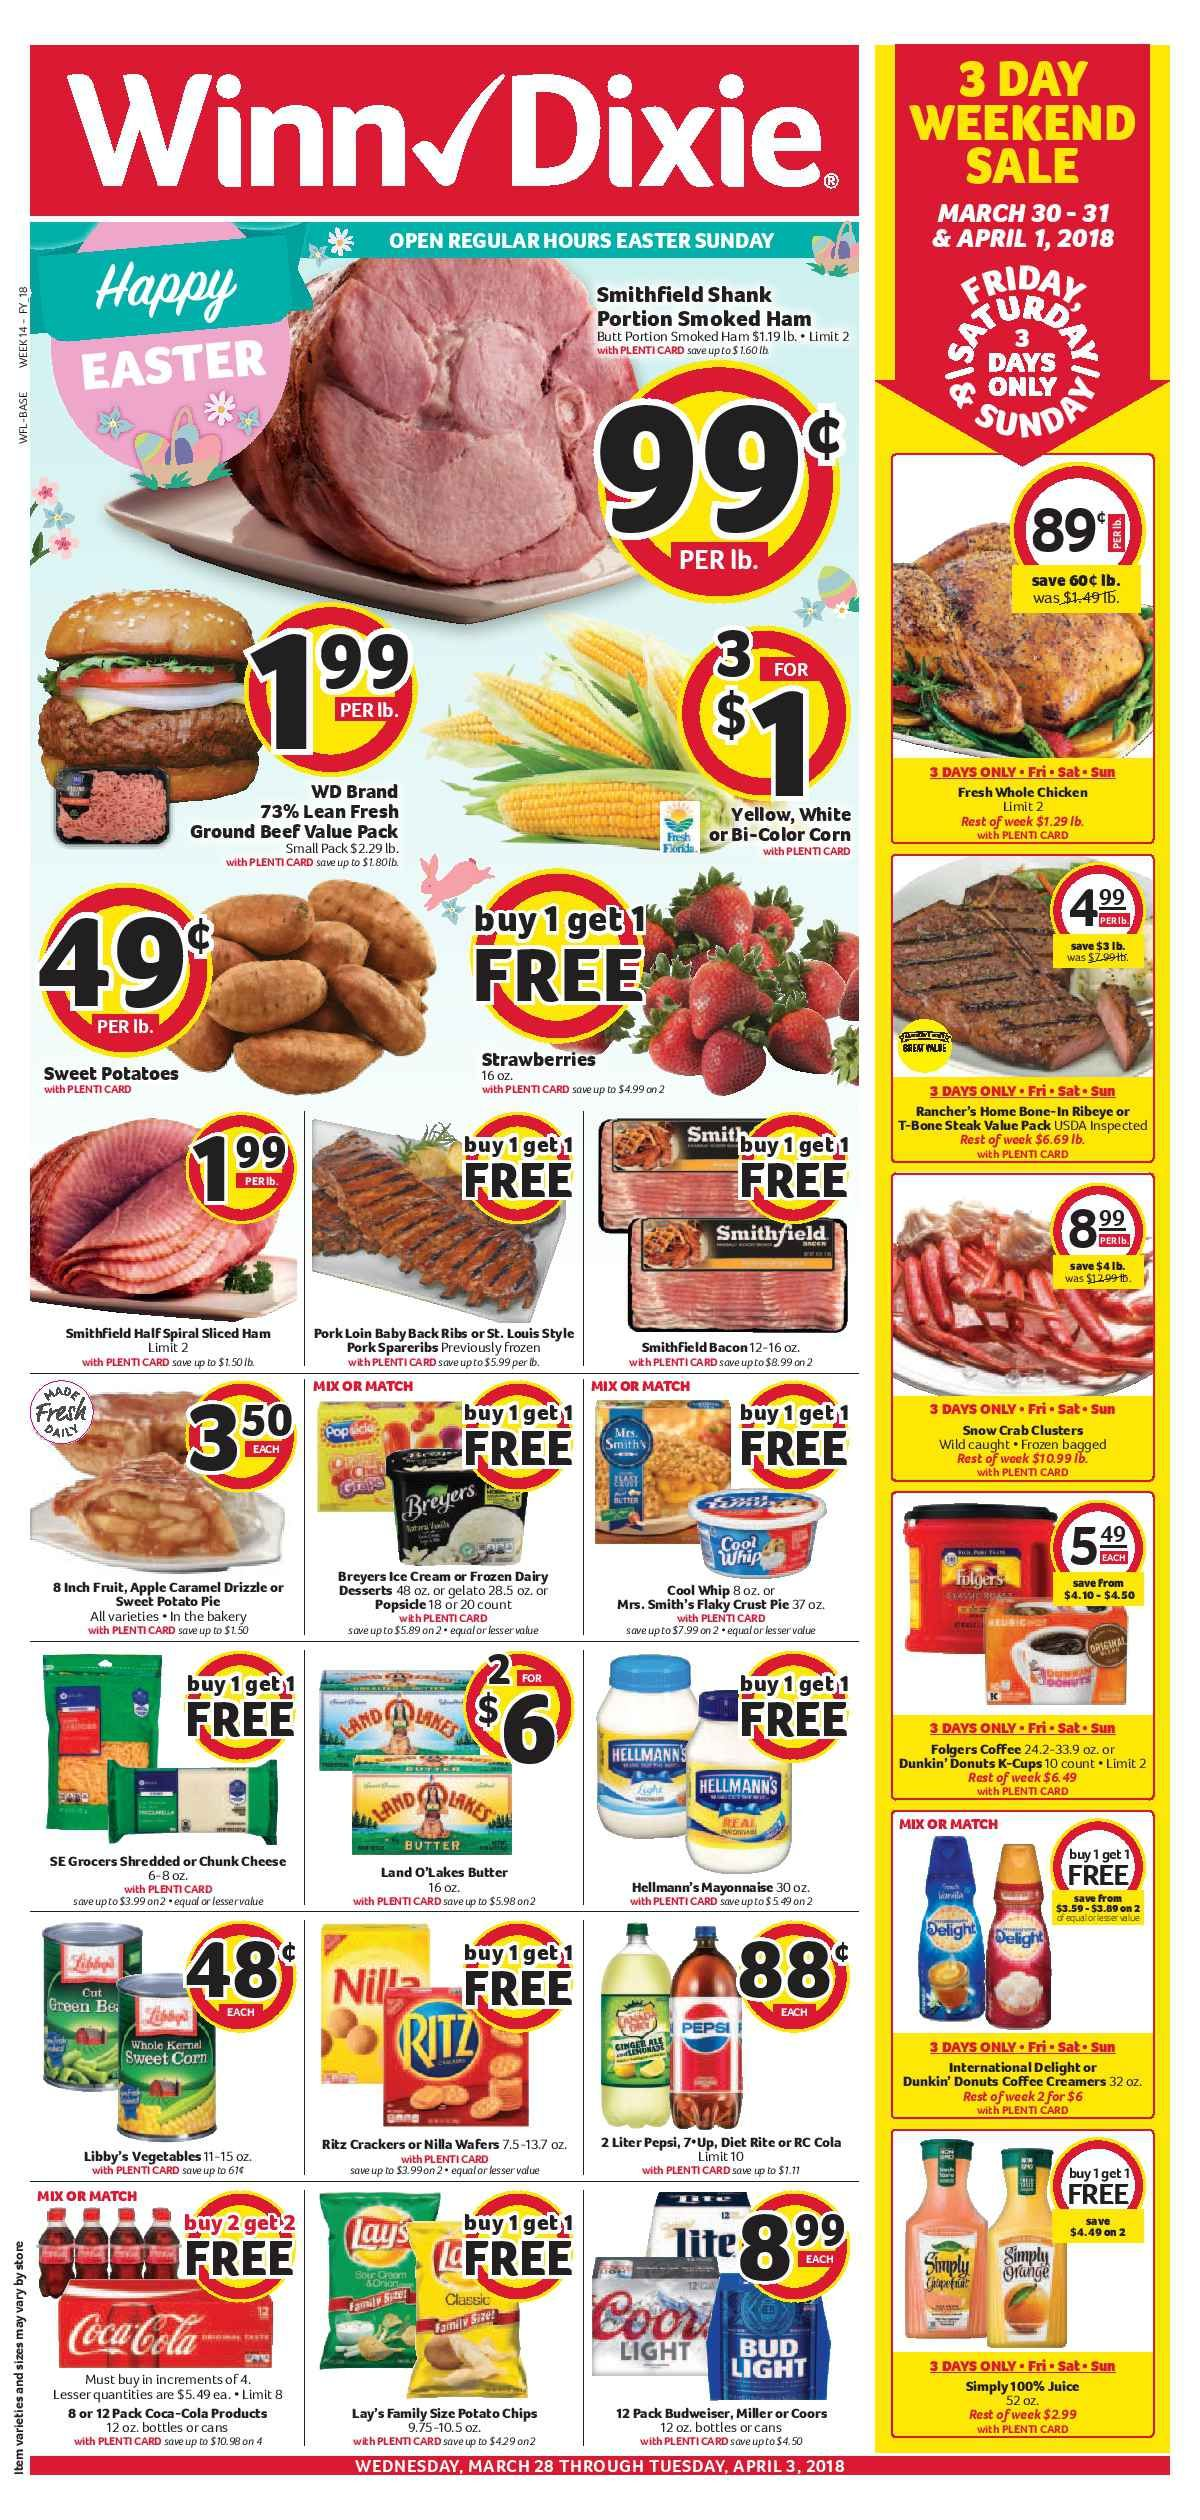 Winn Dixie Weekly ad Flyer April 4   10, 2018 | Weekly ads and Ads